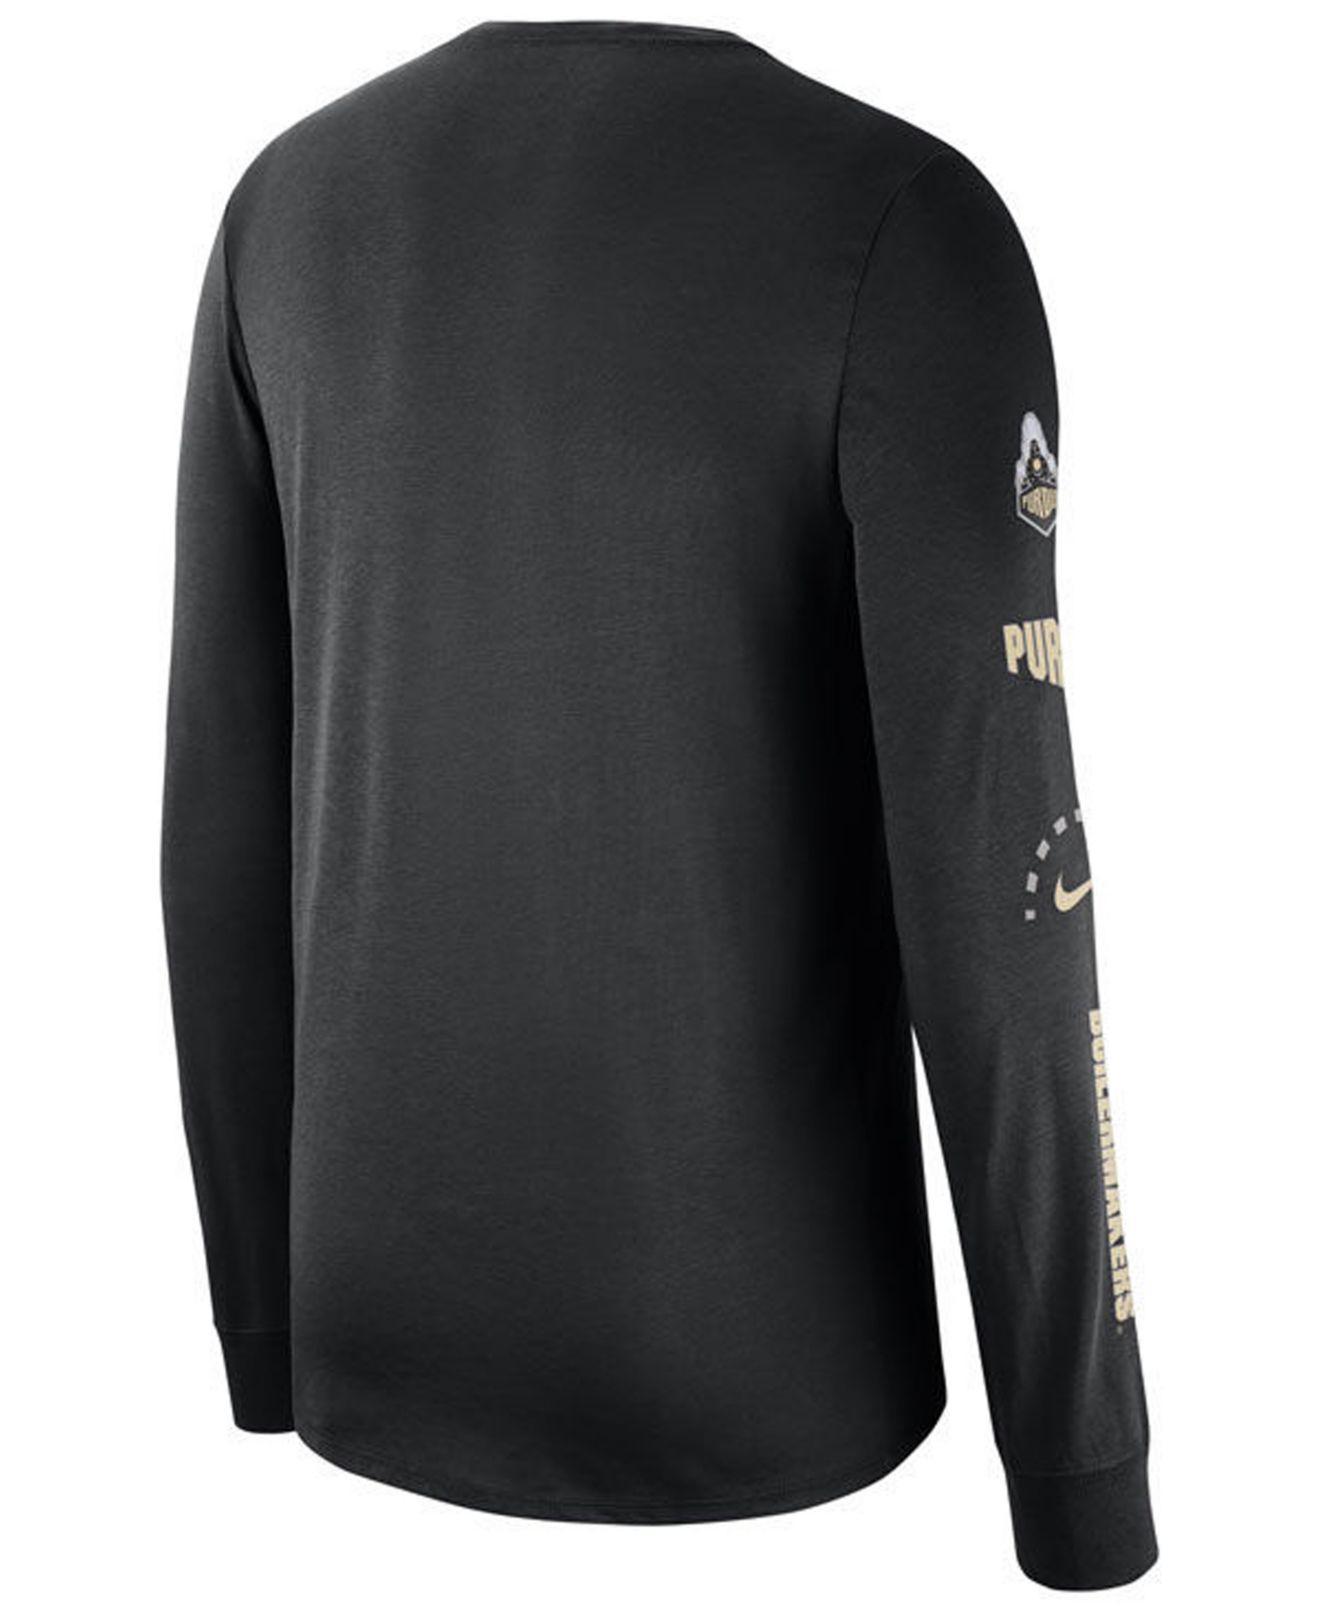 9af690aa7dc Lyst - Nike Purdue Boilermakers Long Sleeve Basketball T-shirt in Black for  Men